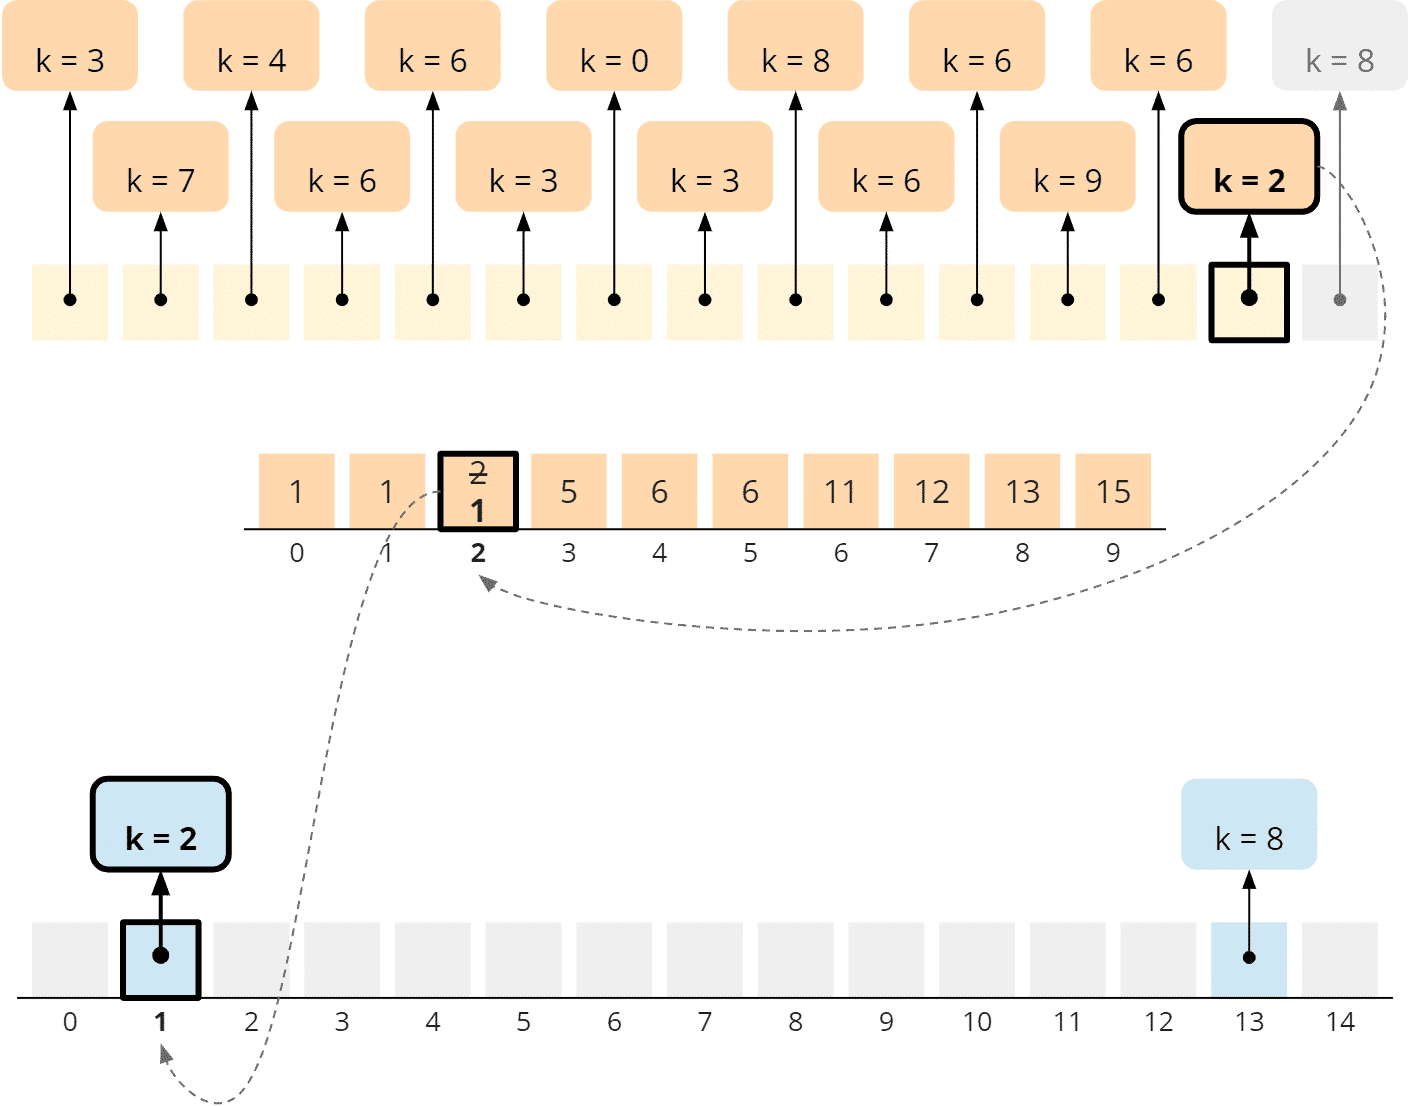 Counting Sort - general algorithm - phase 3 - step 2